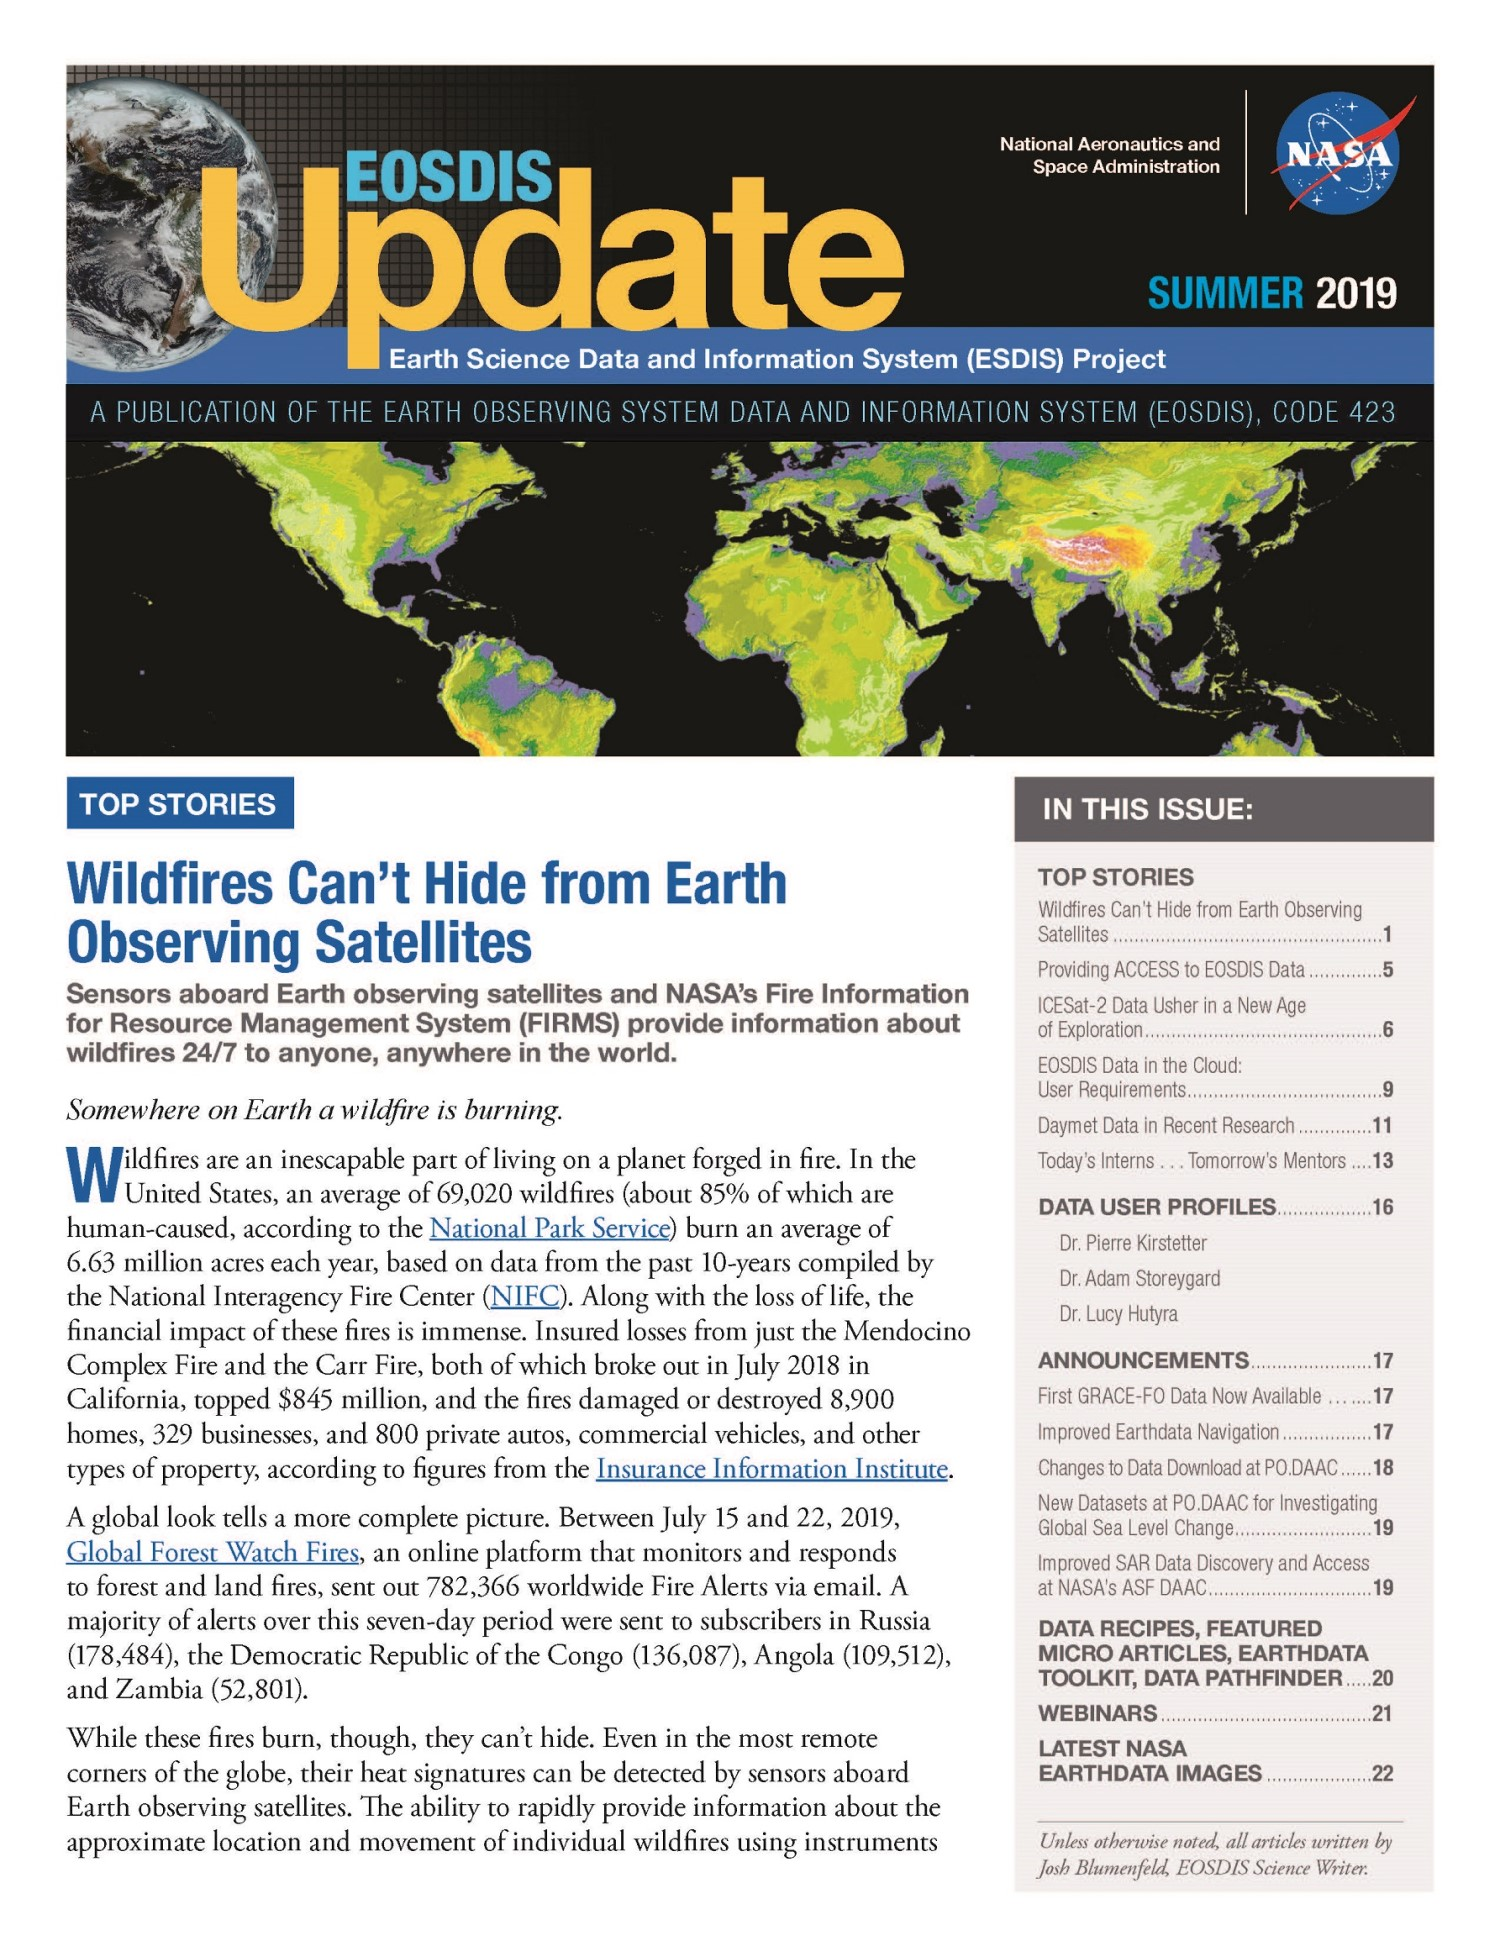 EOSDIS Quarterly Update- Summer 2019 Newsletter Cover Image